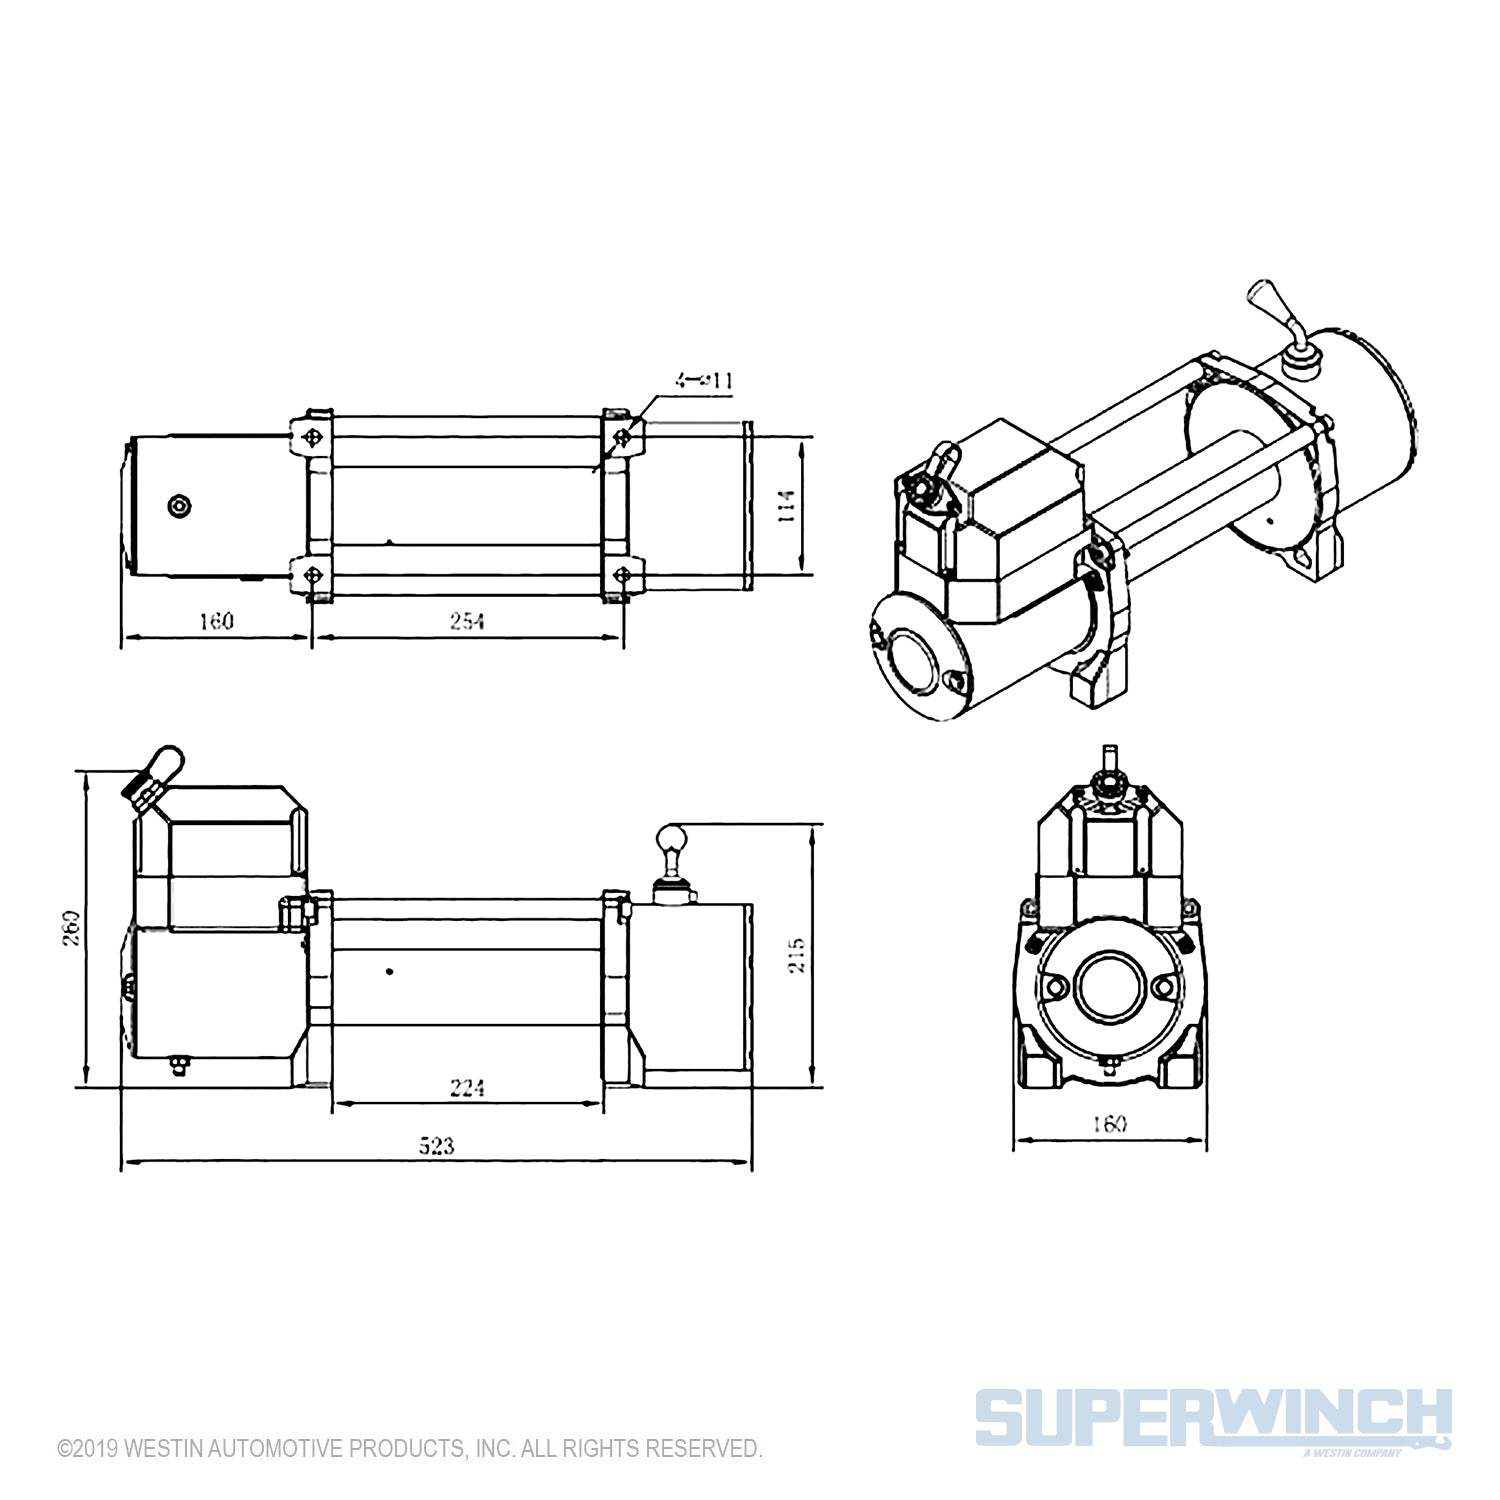 Review the experts rating of Superwinch LP10,000 1510200